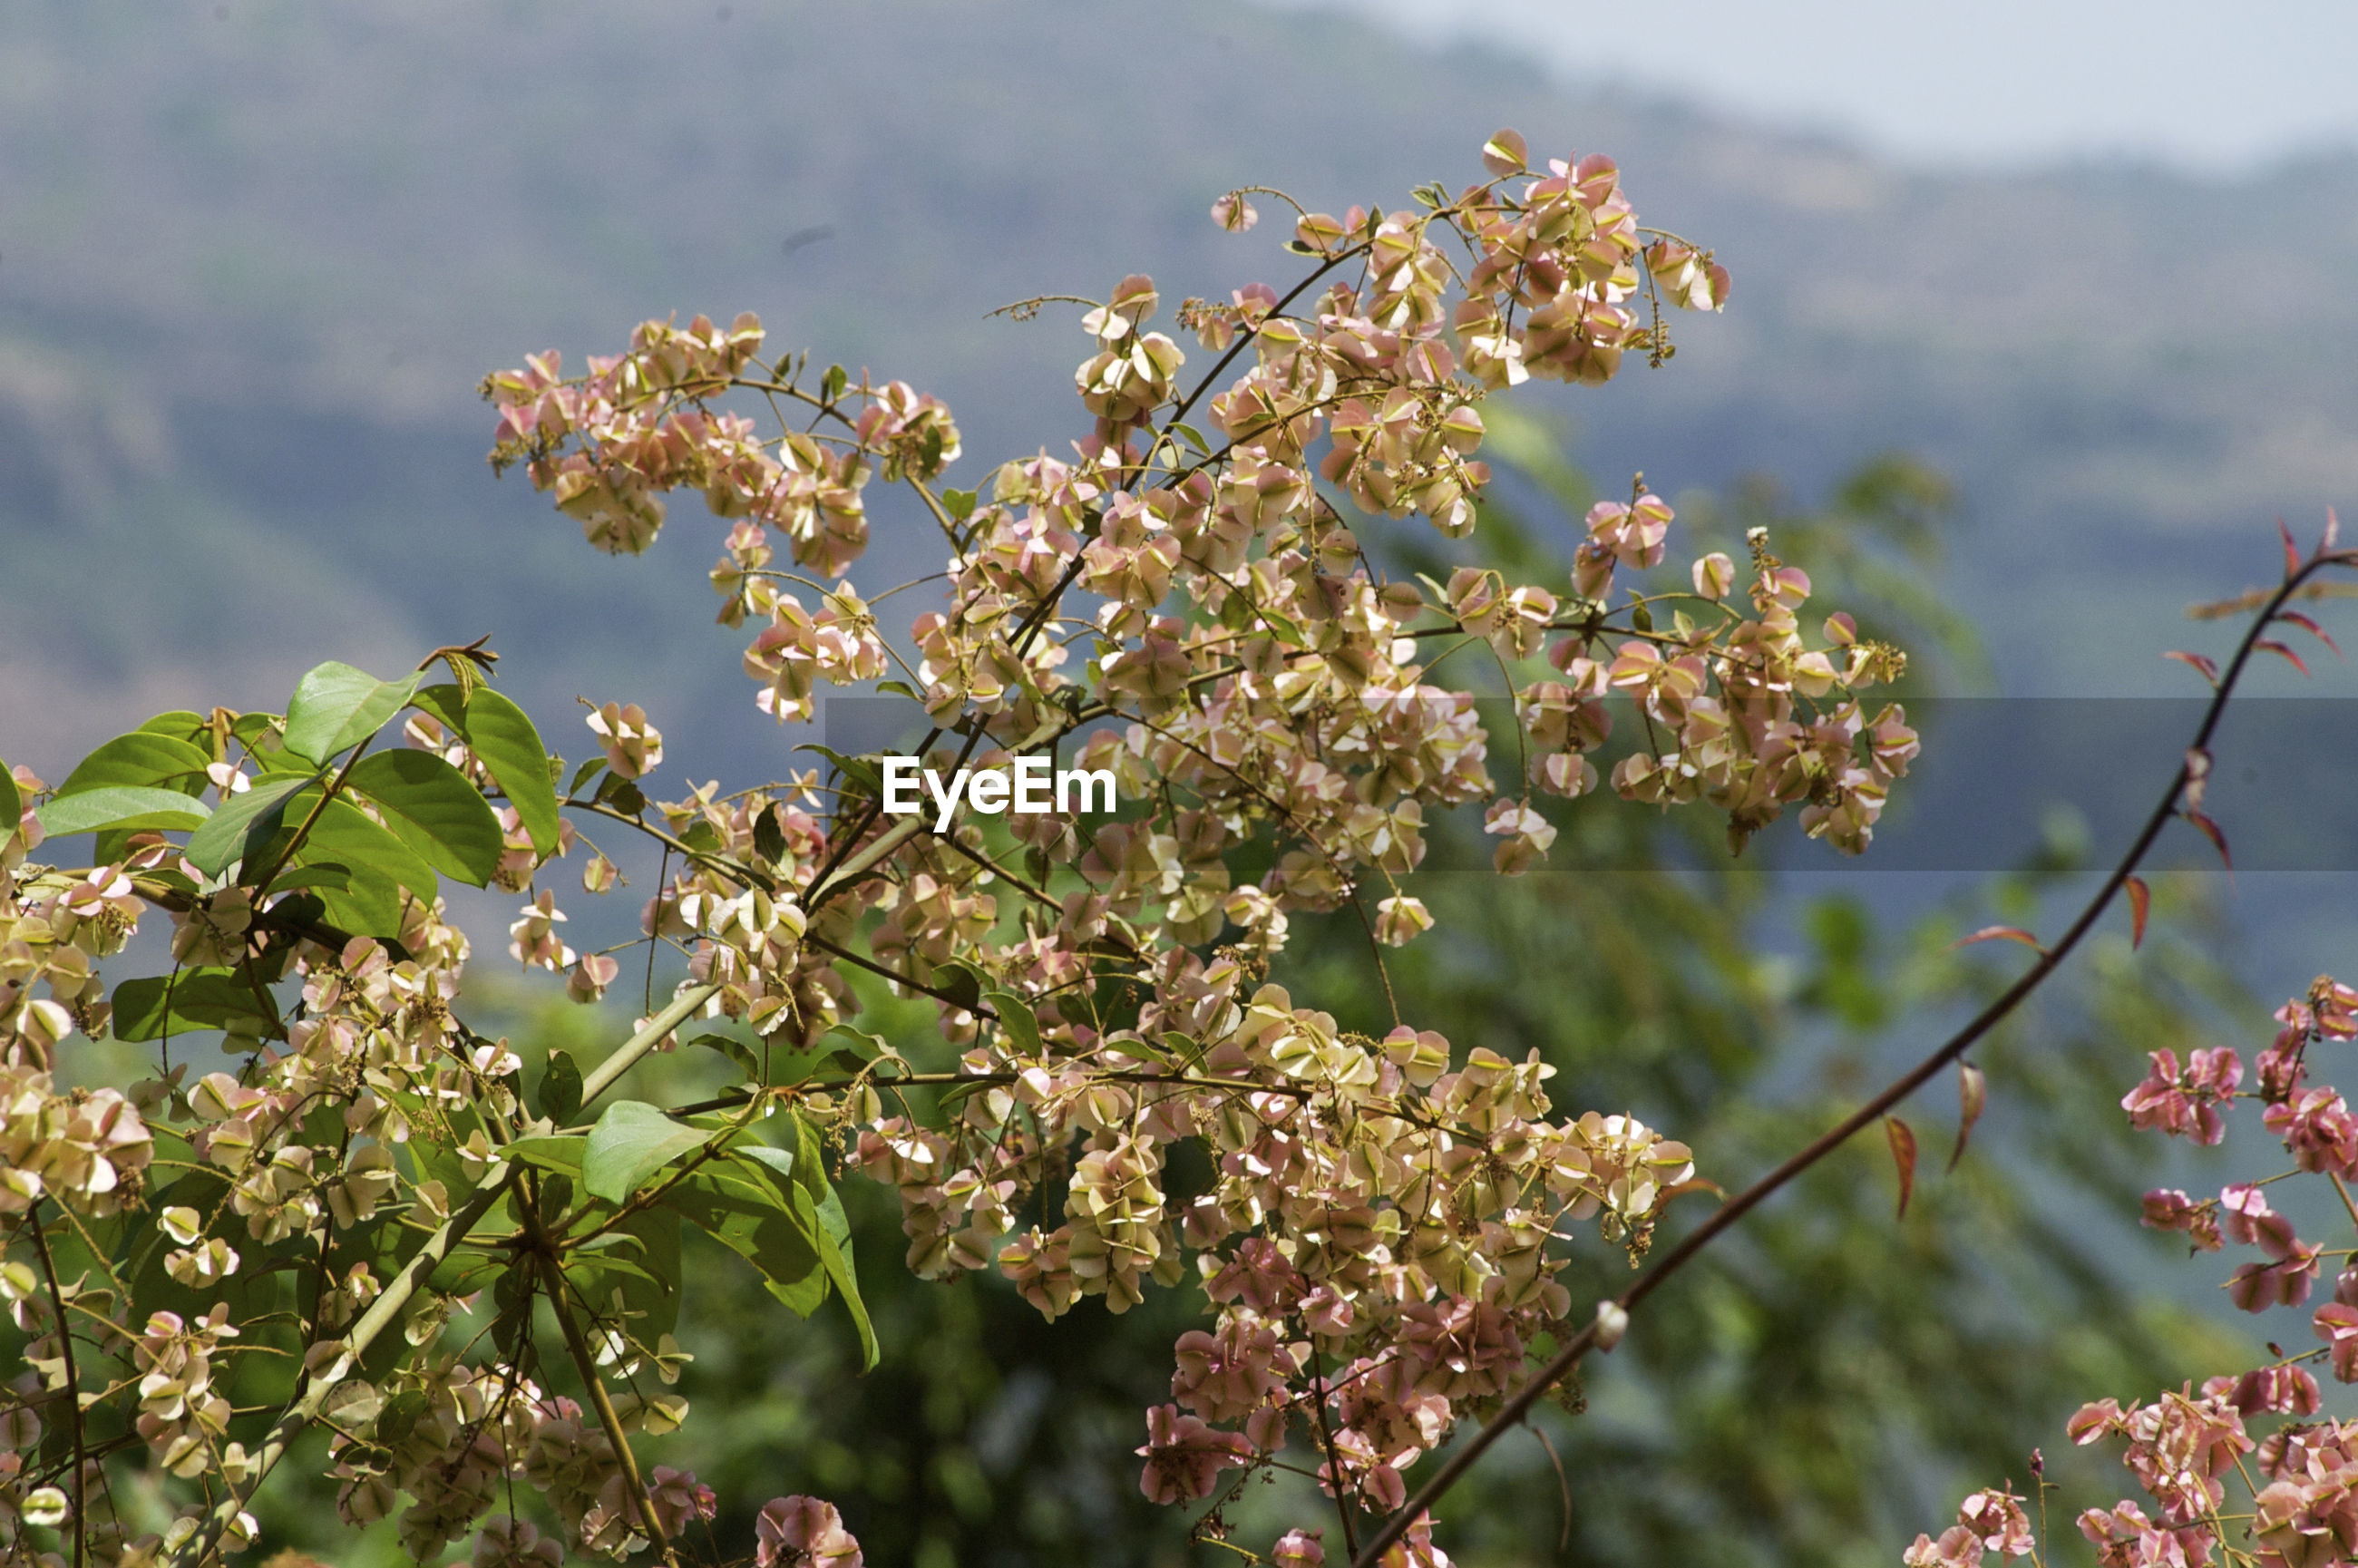 CLOSE-UP OF FRESH FLOWERS BLOOMING IN TREE